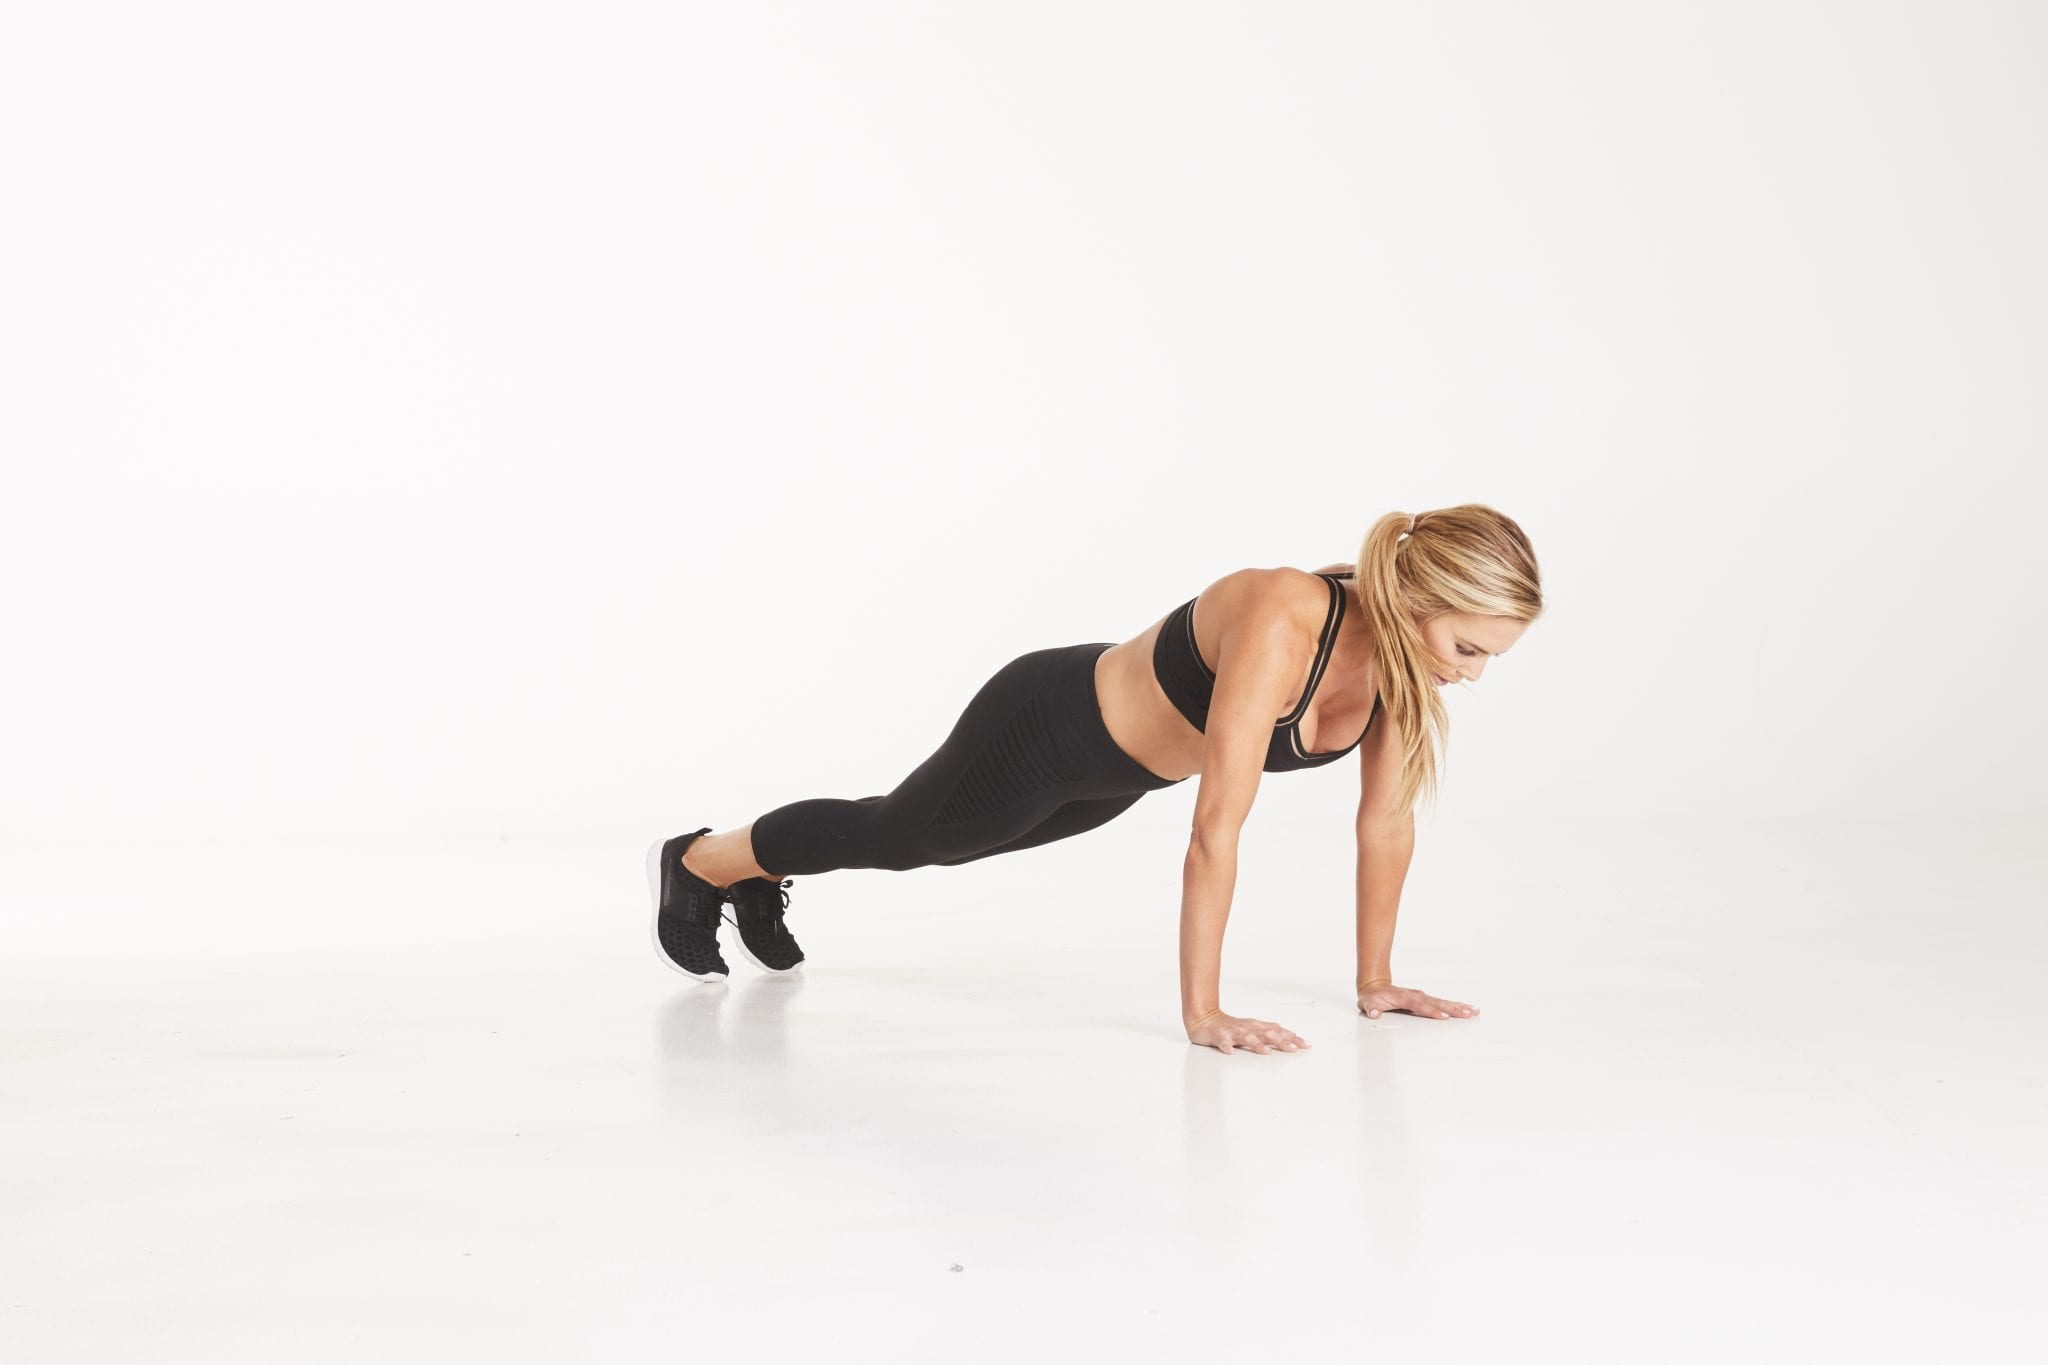 forearm plank, plank challenge, planks, how to plank, weekly workout, workouts, daily workout schedule, workouts for women, at home workout for women.